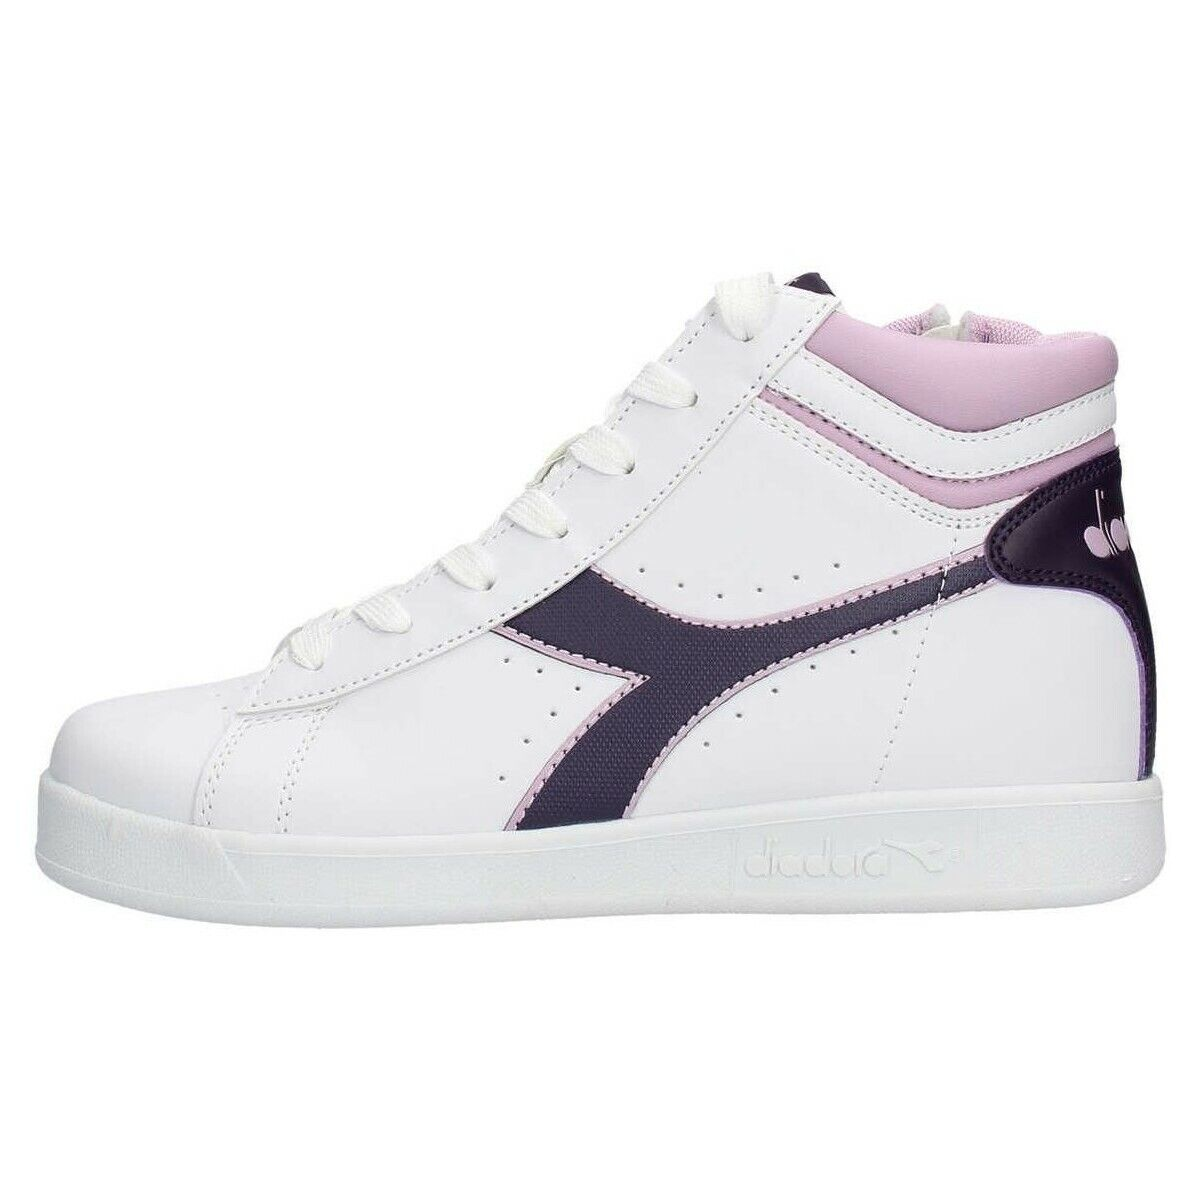 shoes DIADORA BAMBINA RAGAZZA GAME P HIGH GS 101.173762 01 C7630 BIANCO pink